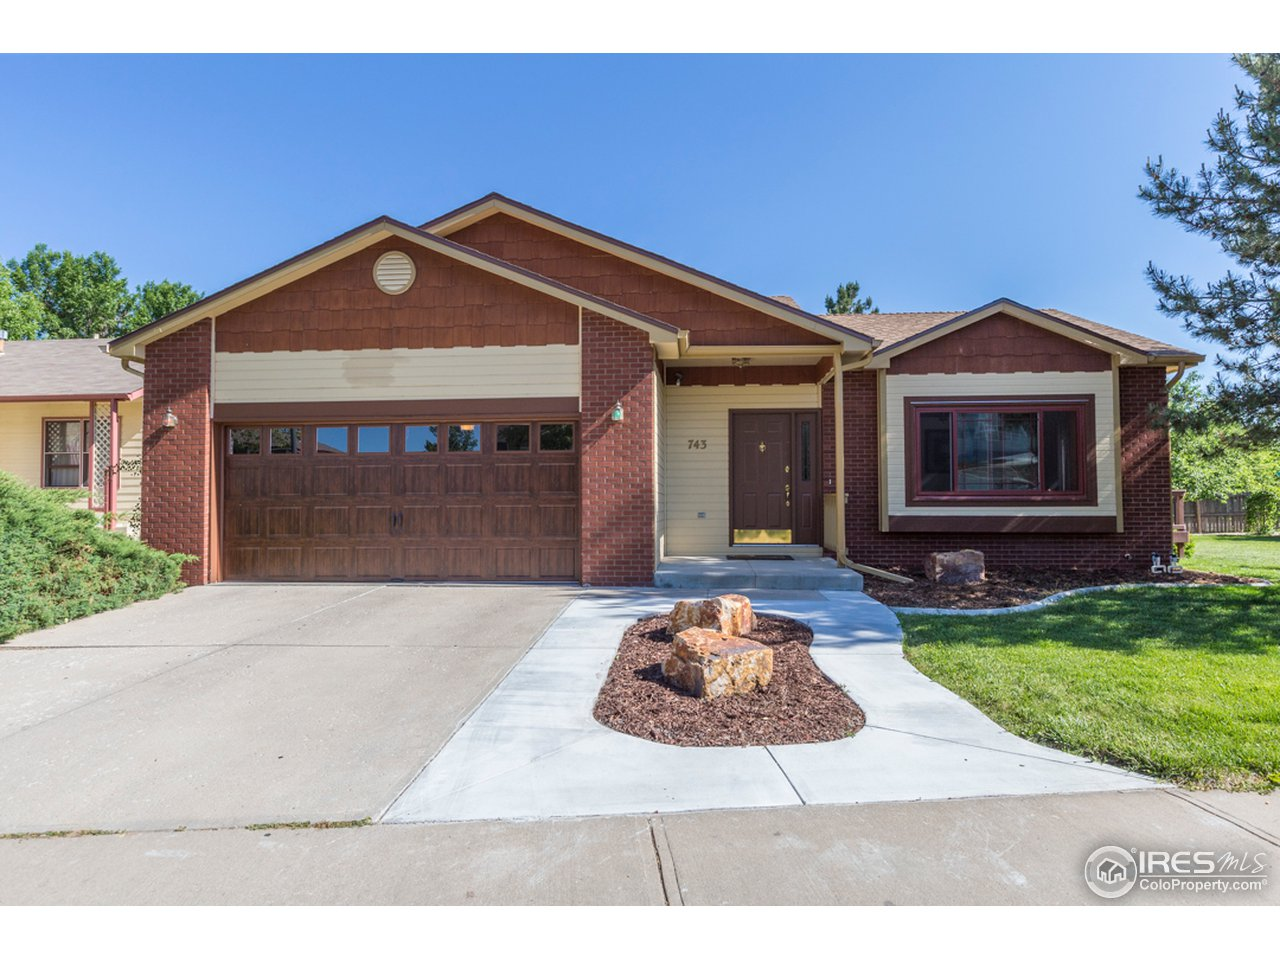 743 Grouse Cir, Fort Collins CO 80524